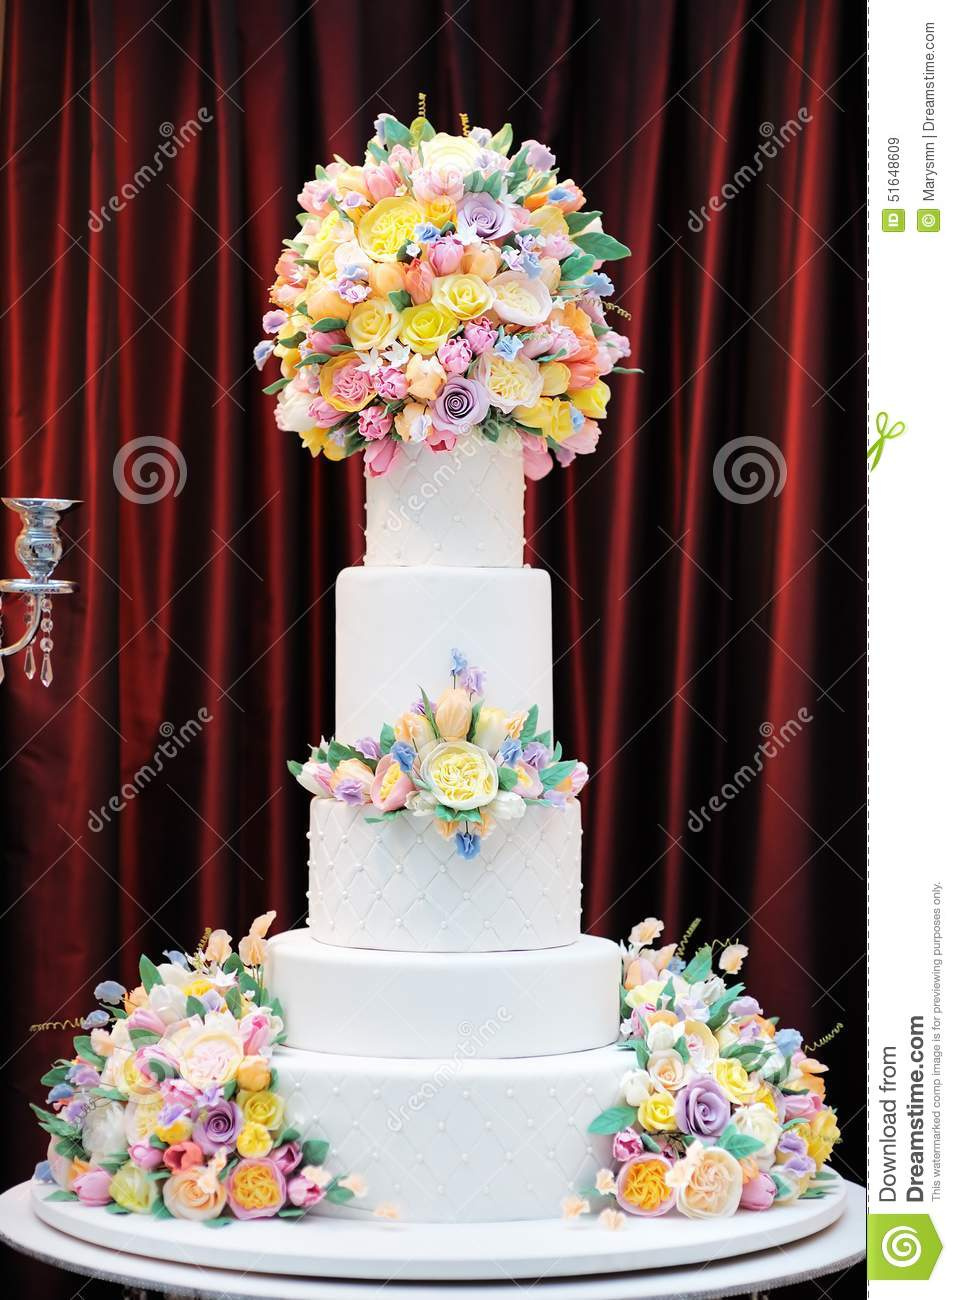 Delicious Luxury White Wedding Cake Decorated With Cream